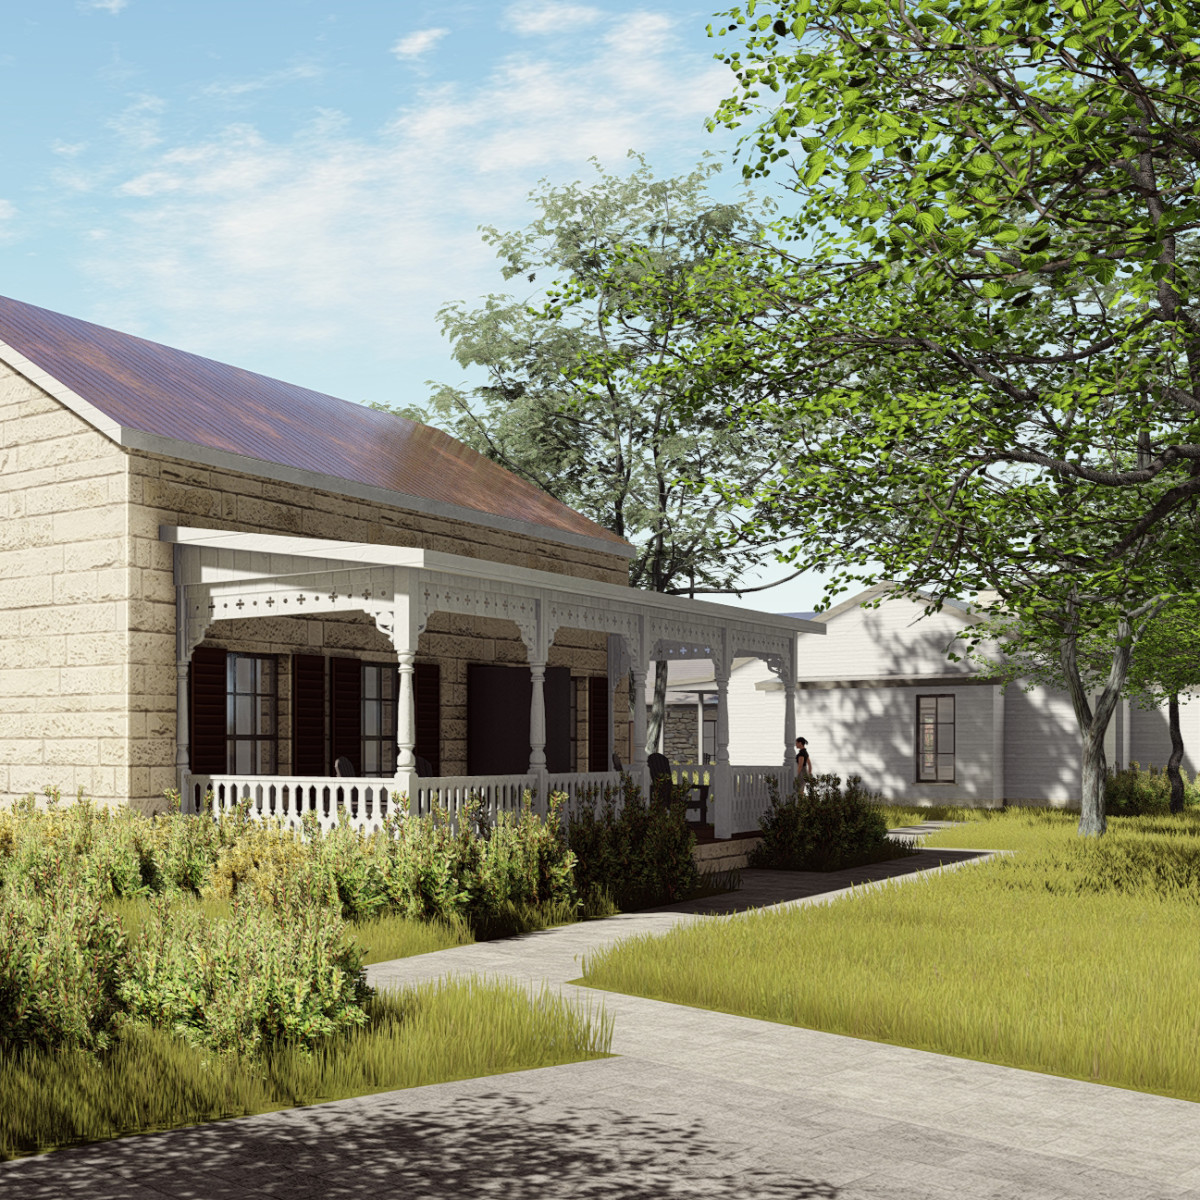 North Hills At Town Center: $78 Million Resort Breaking Ground In Charming Texas Hill